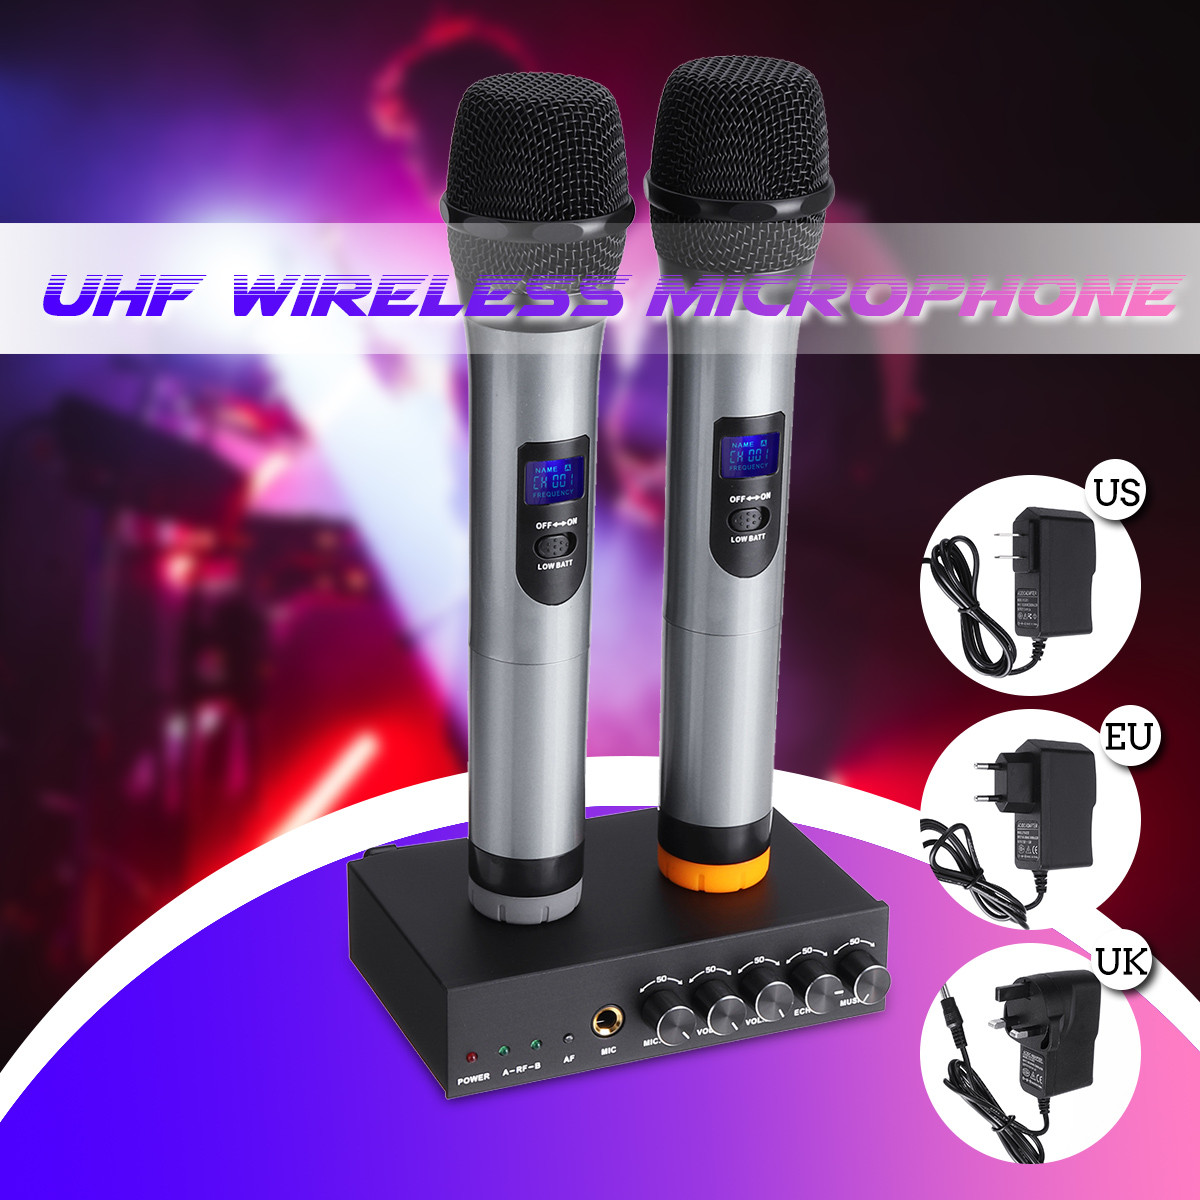 UHF Handheld Karaoke Microphone Wireless Professional System 2 Channel Frequency Adjustable  Wireless Microphone SystemUHF Handheld Karaoke Microphone Wireless Professional System 2 Channel Frequency Adjustable  Wireless Microphone System